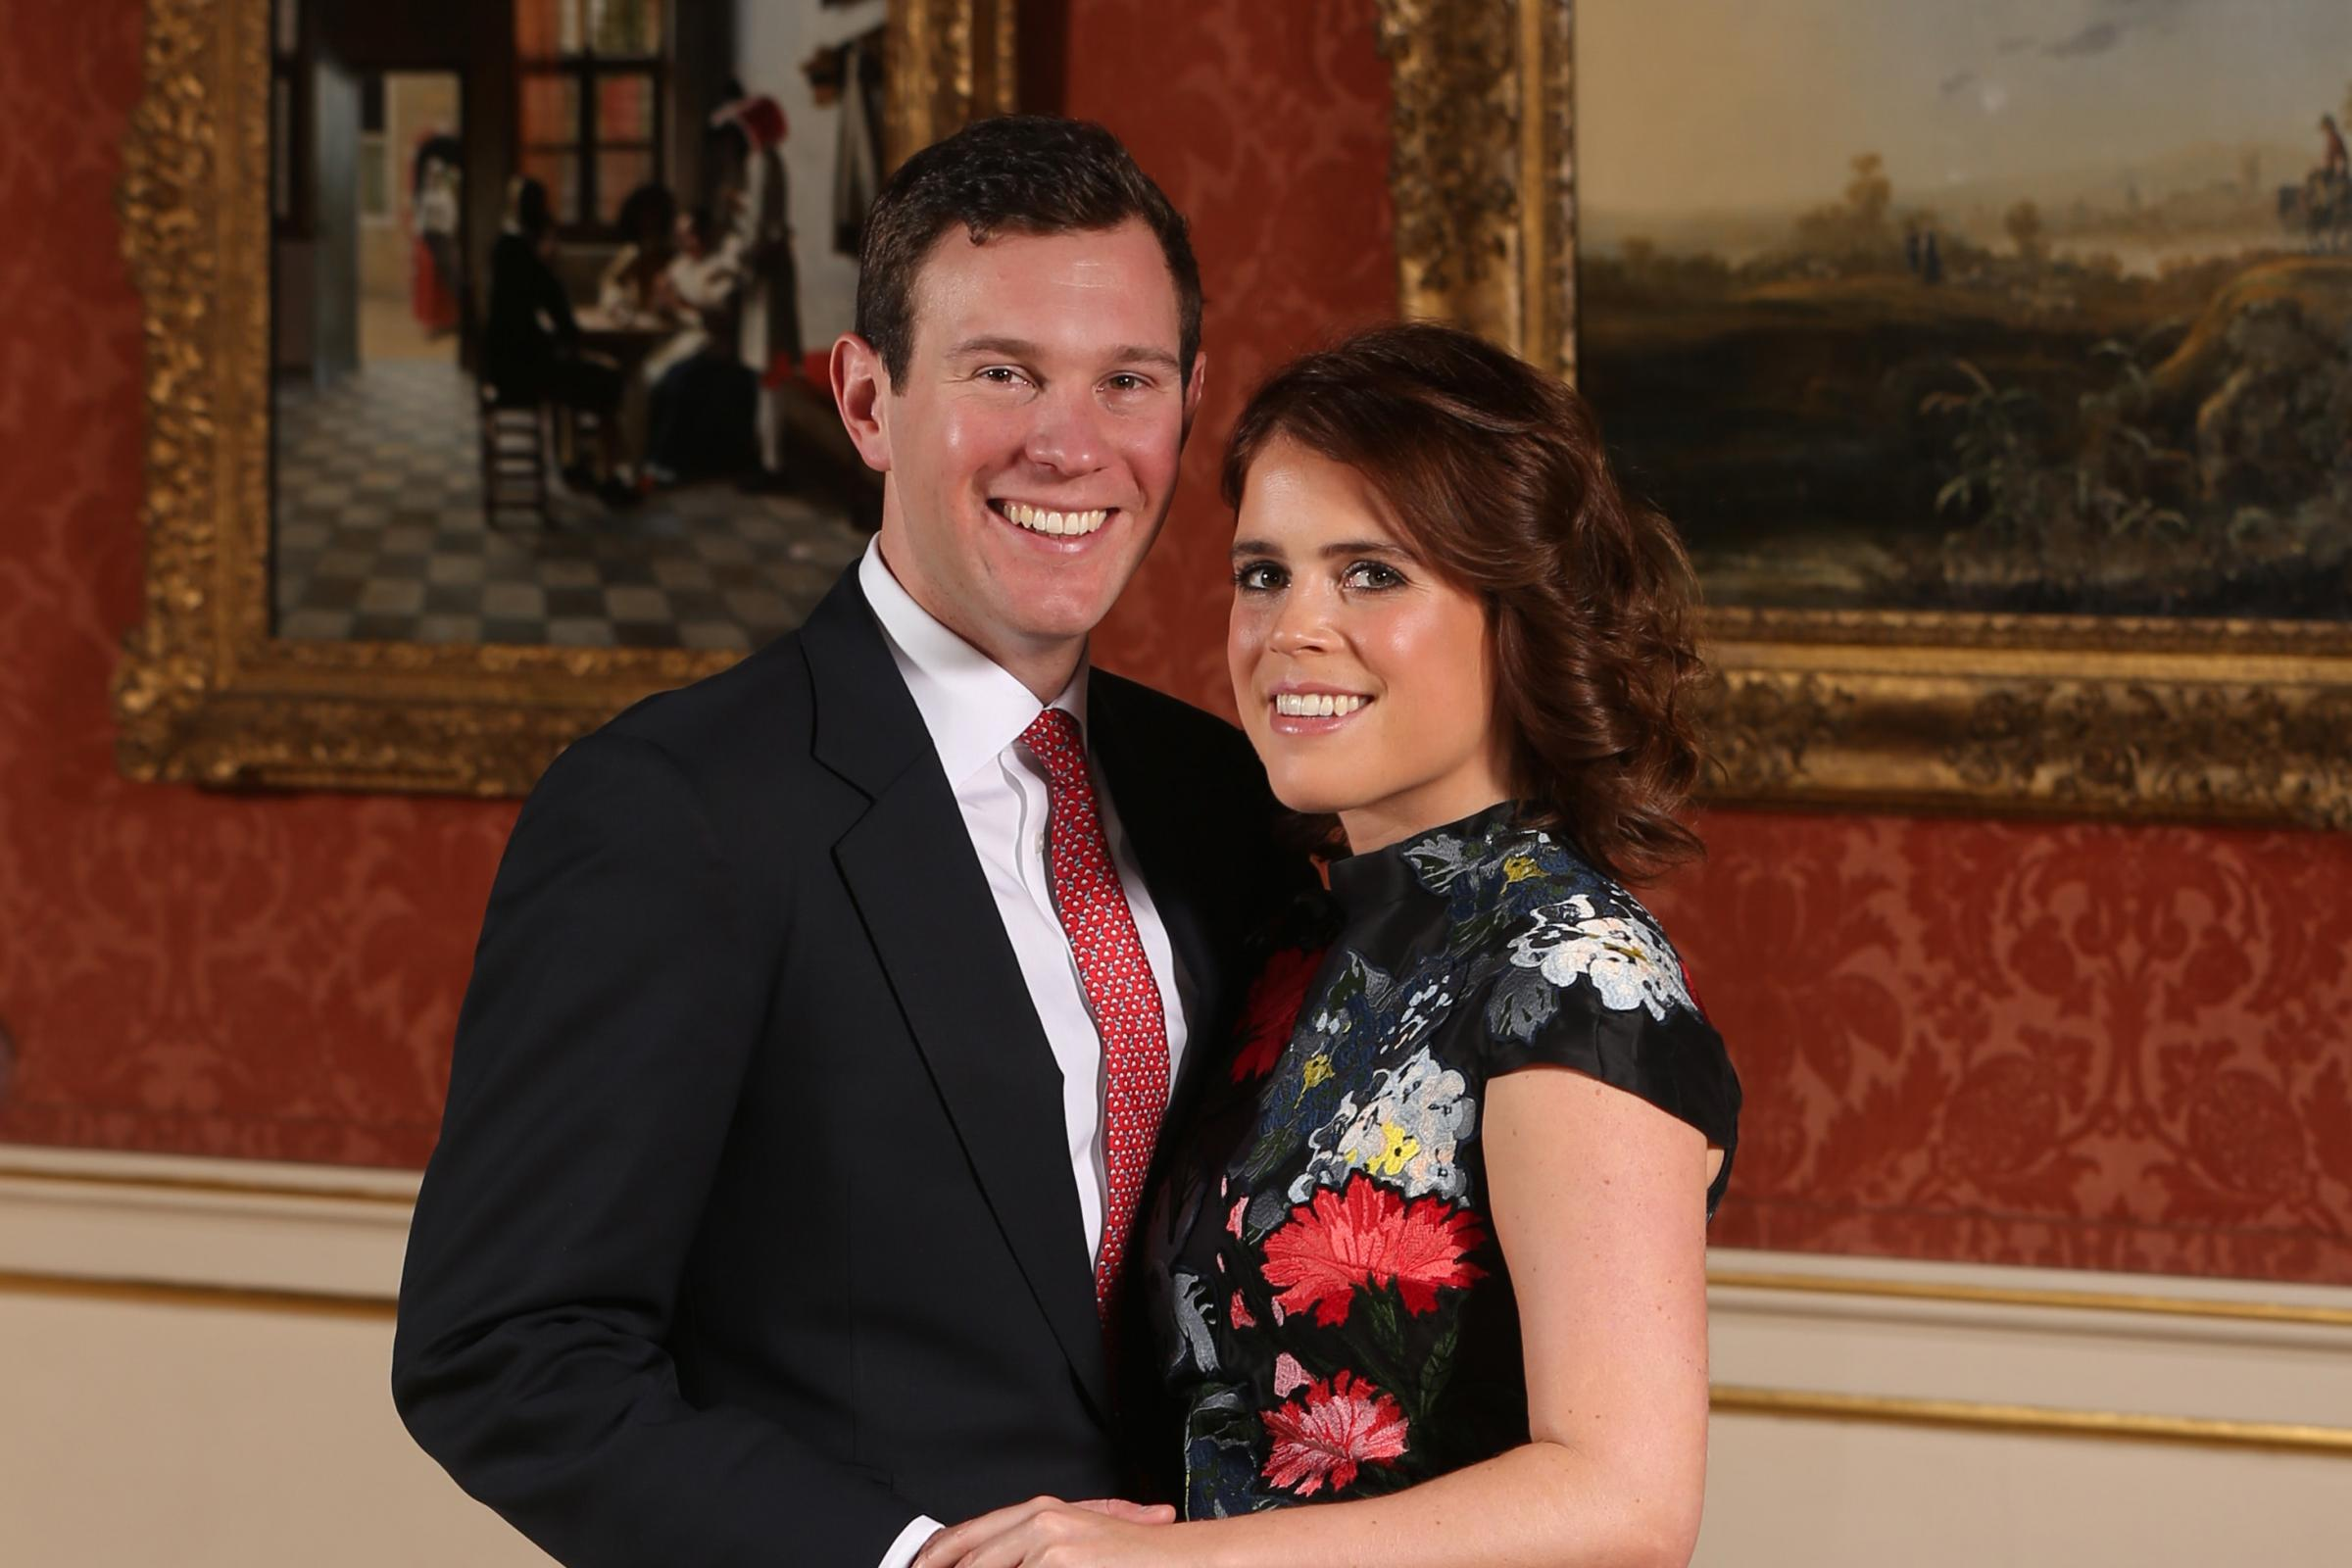 Royal wedding date for Princess Eugenie and Jack Brooksbank is announced - PA/Wire photo